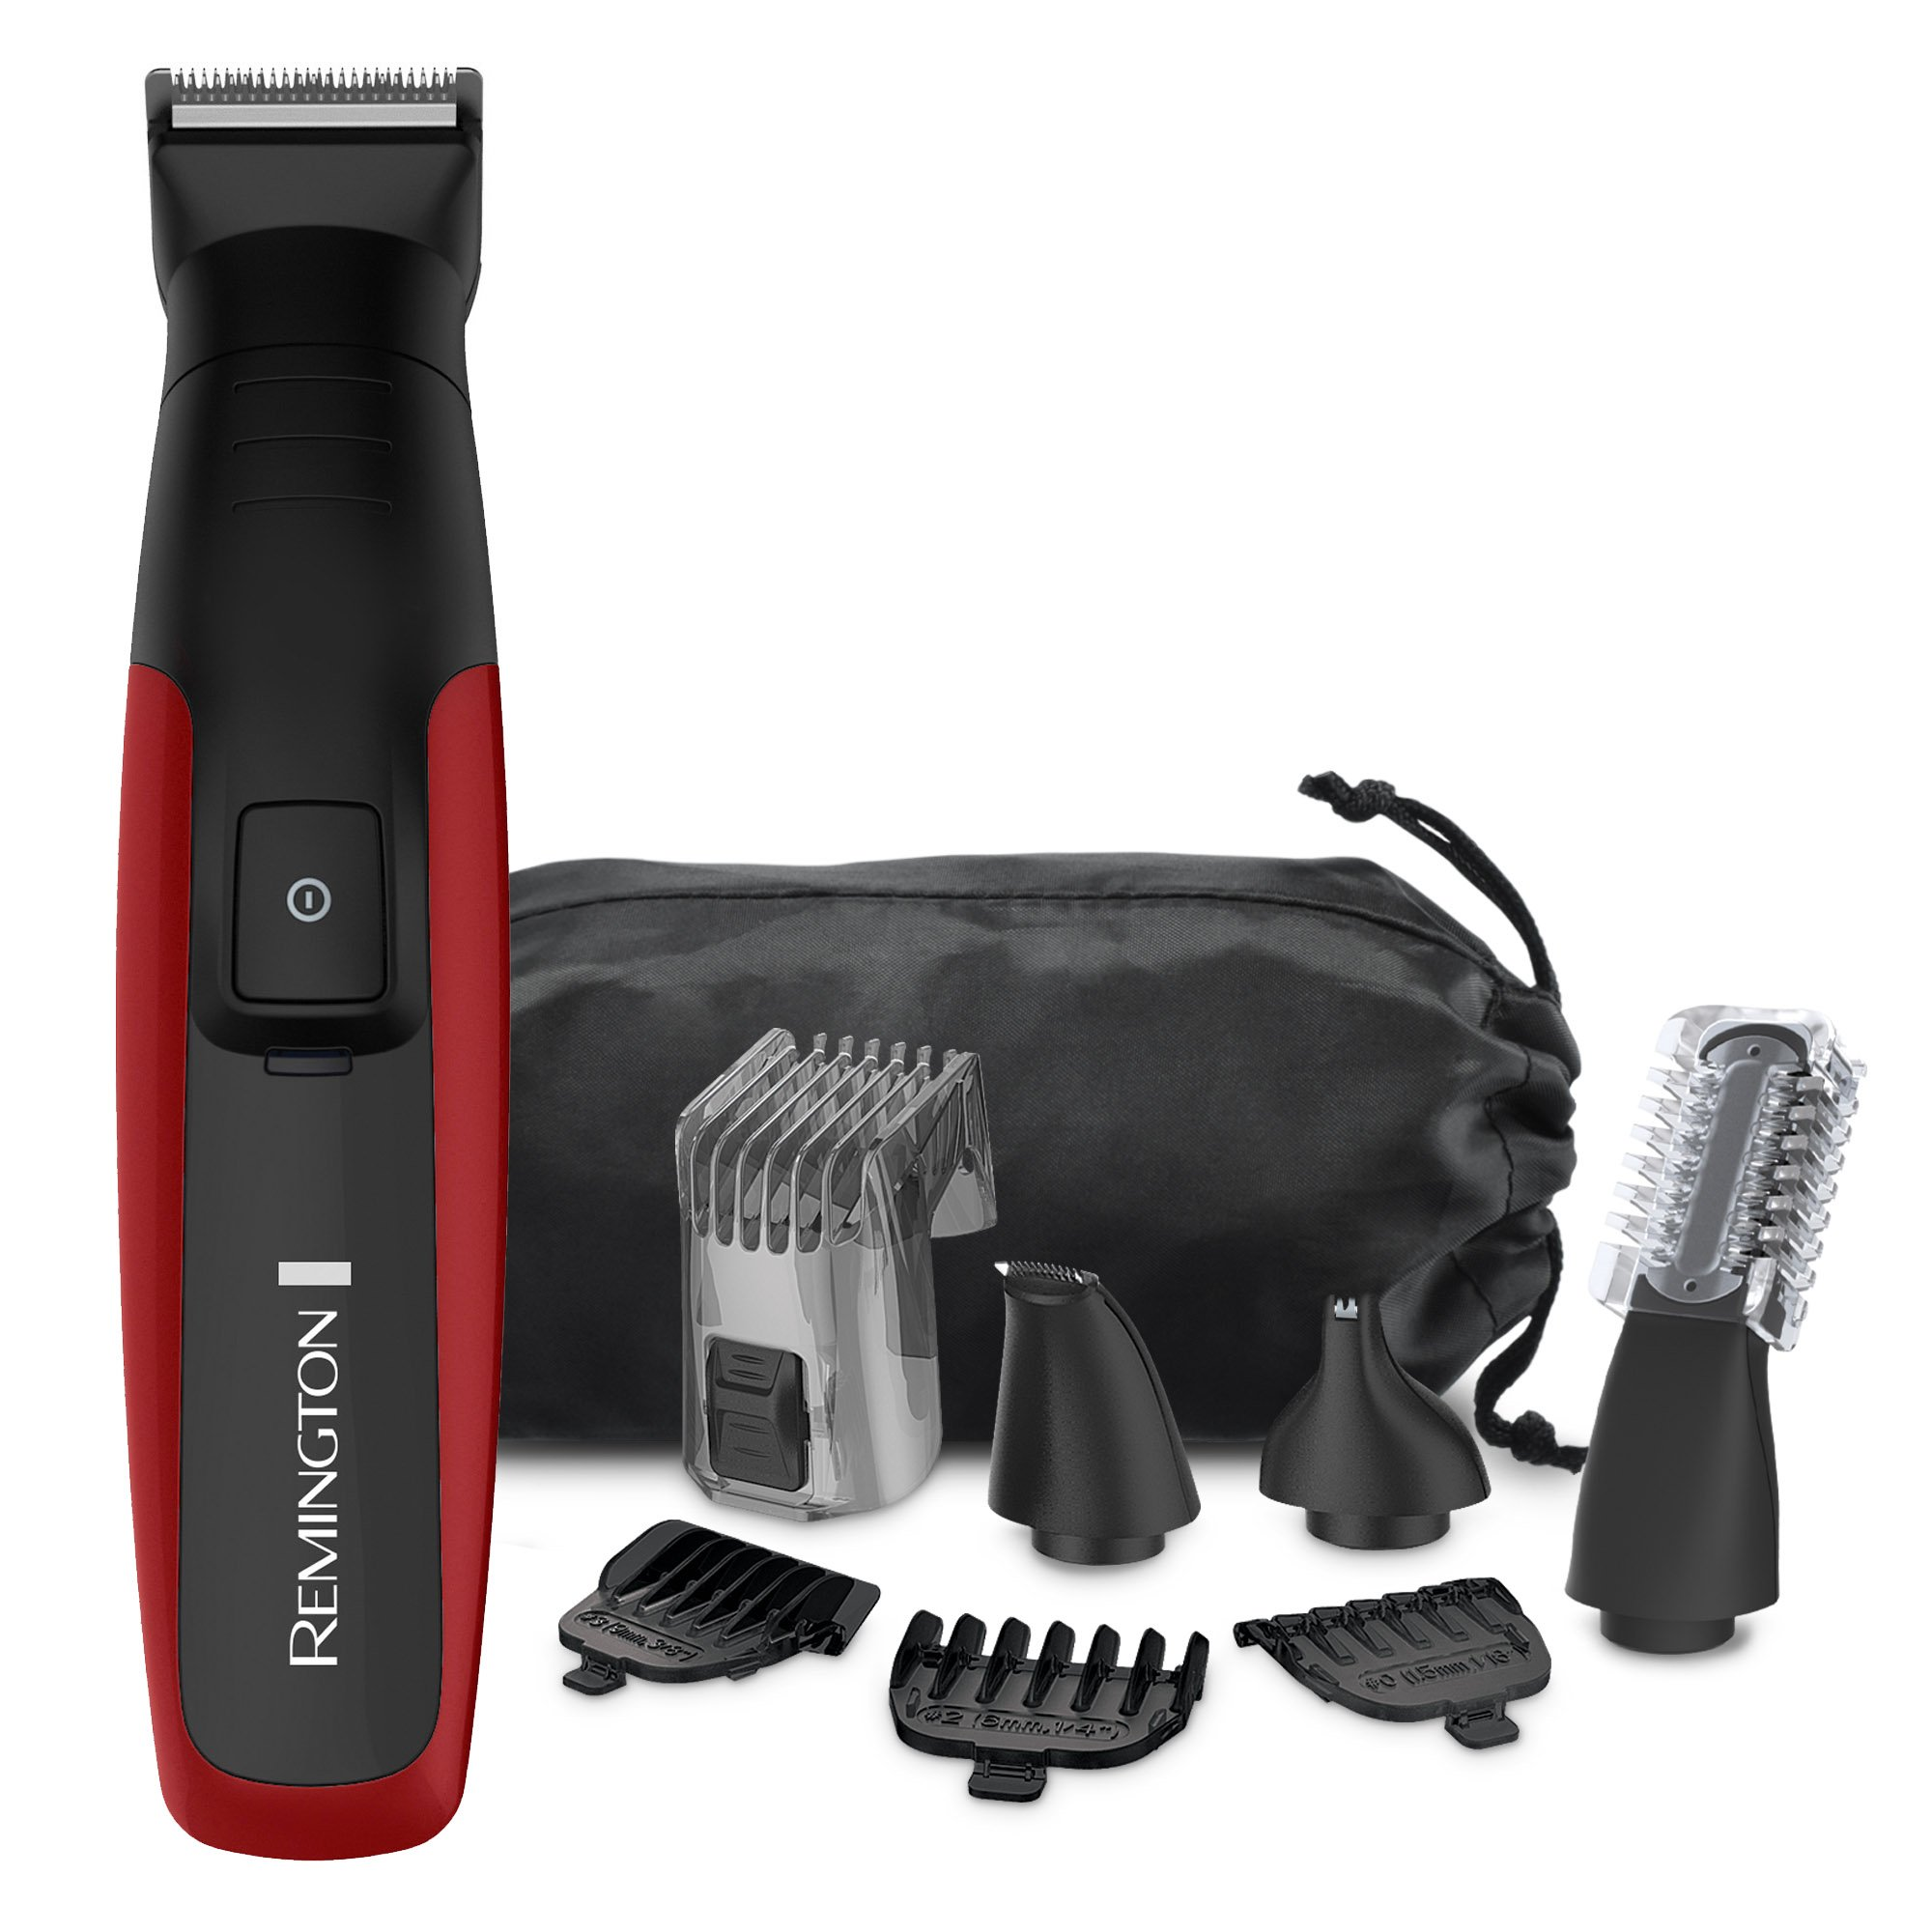 Remington PG6155B Lithium Powered Face, Head & Body Grooming Kit, Cordless Beard Trimmer (9 pieces), Red by Remington